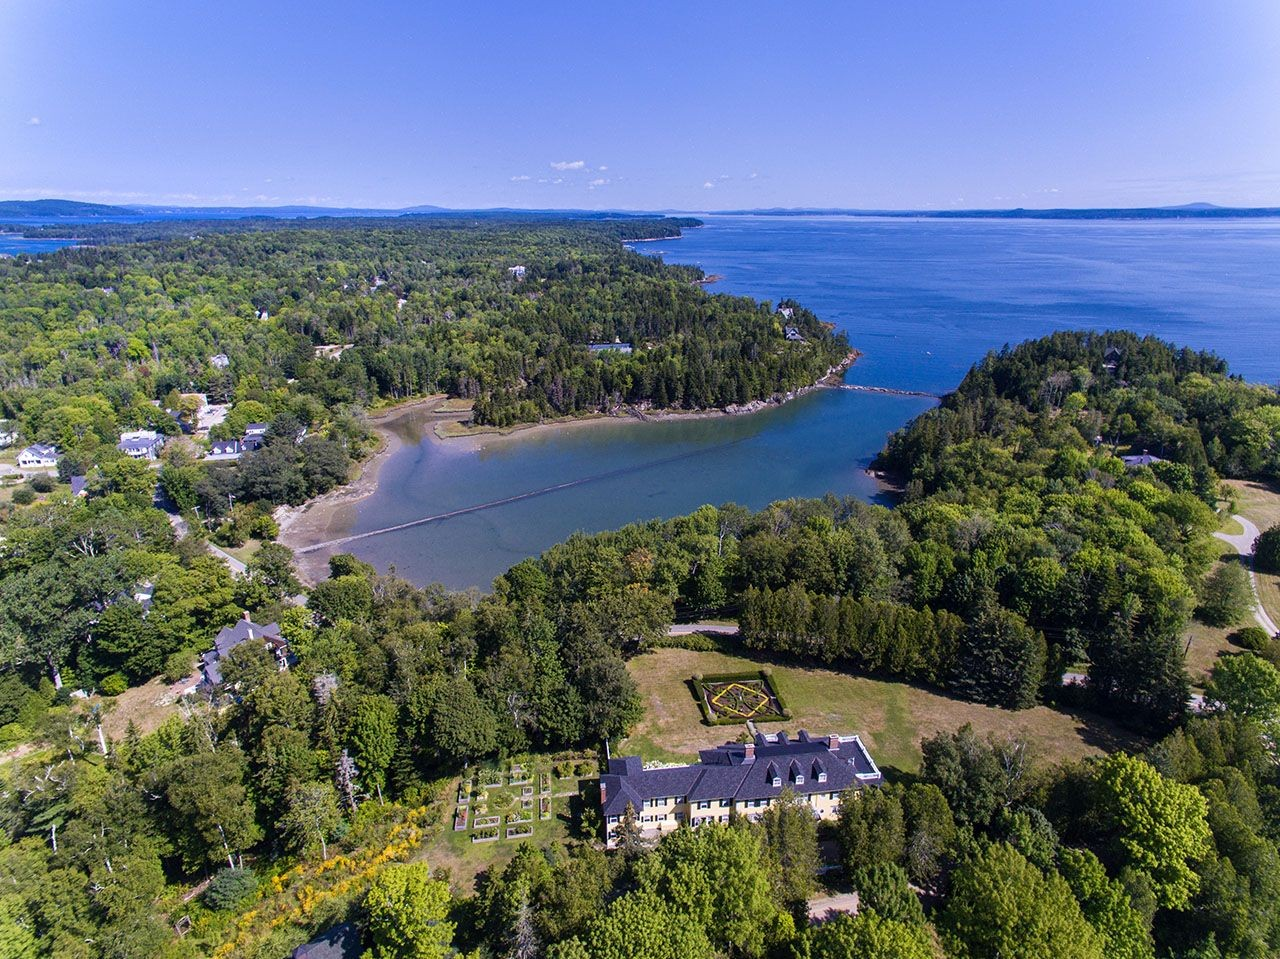 dark harbor house a luxury single family home for sale in islesboro, maine property id 52373128 christie s international real estate